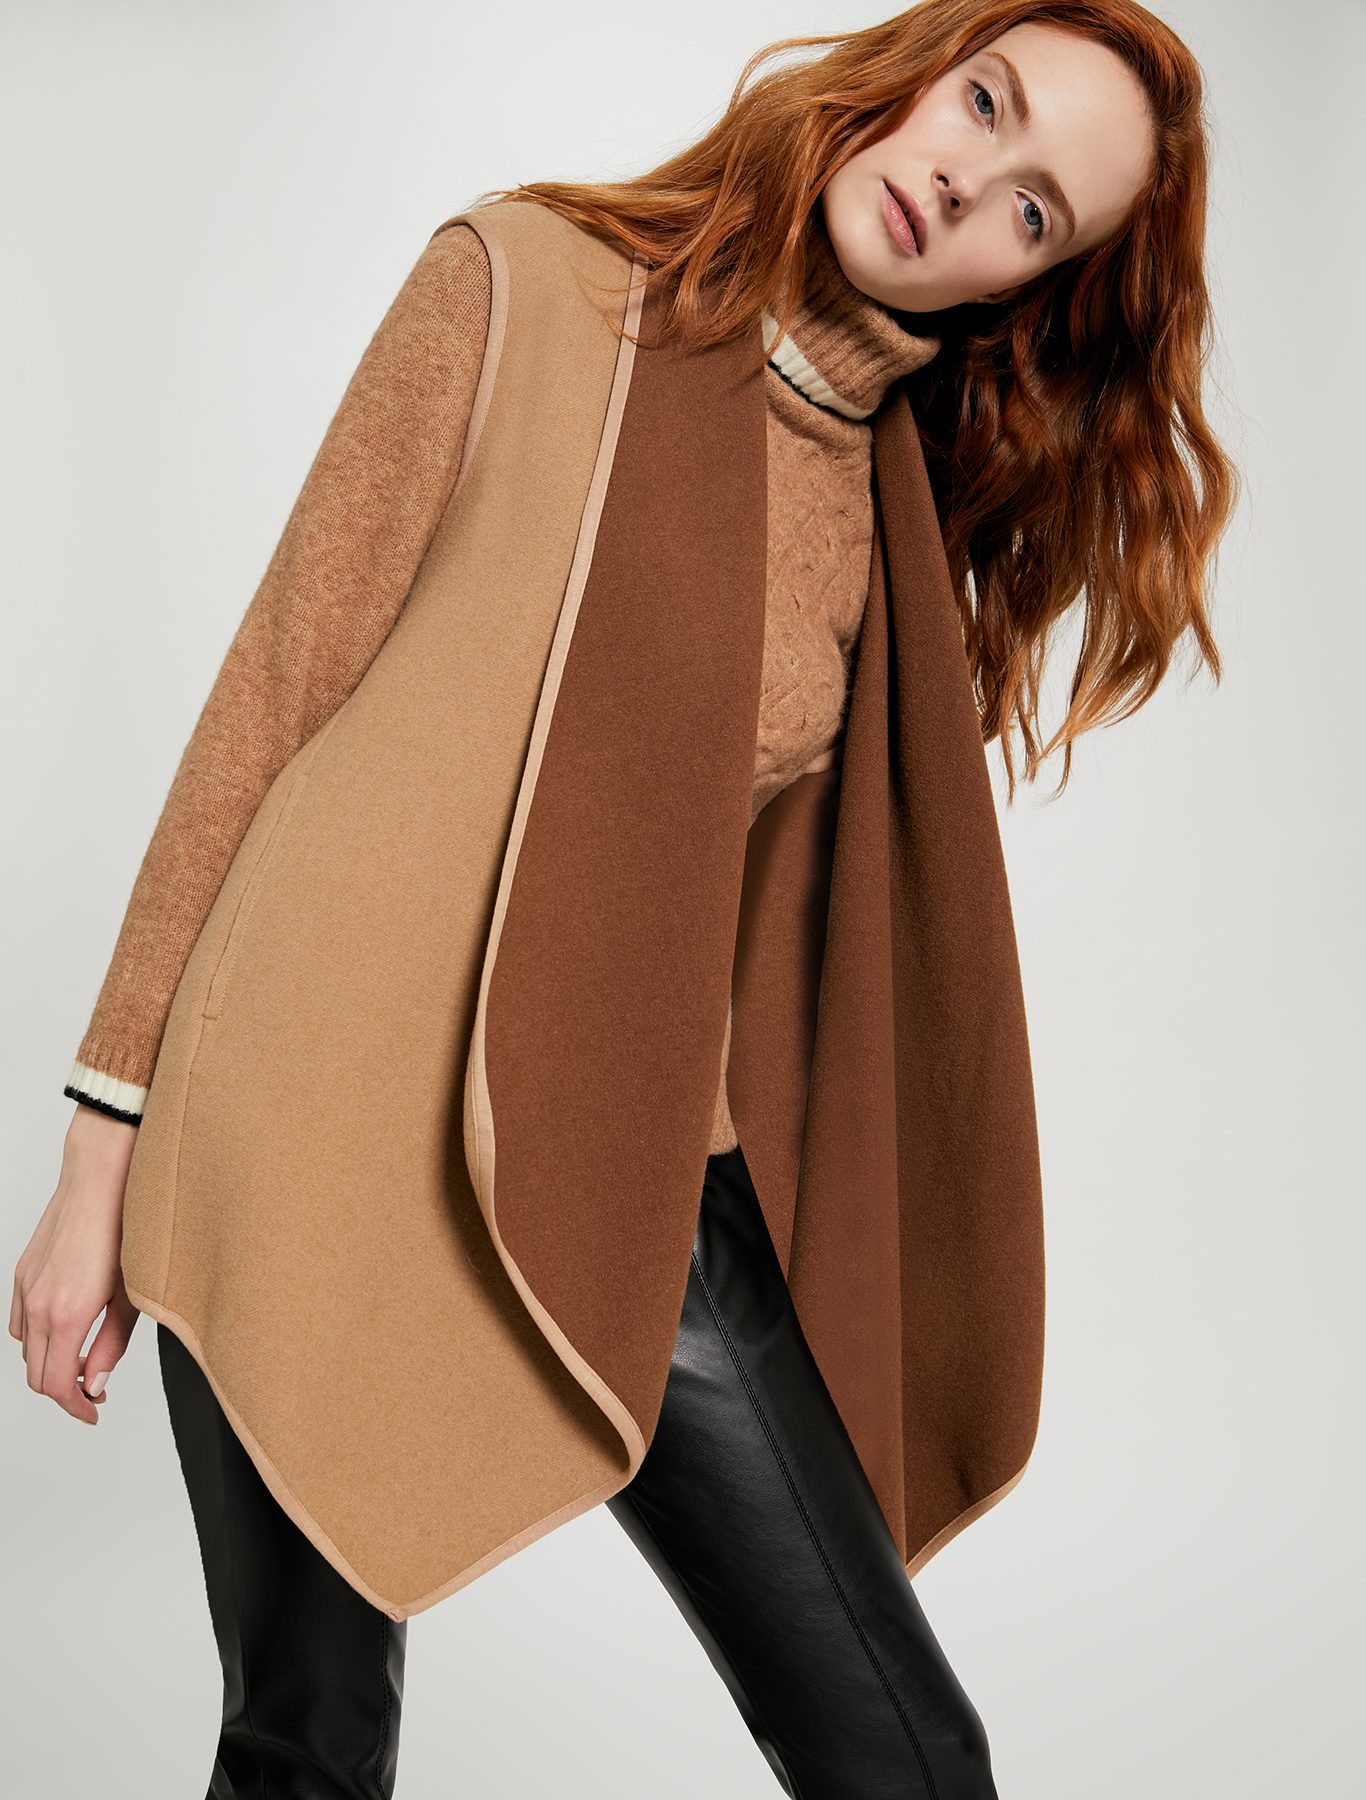 Reversible puffer jacket with gilet - camel - pennyblack